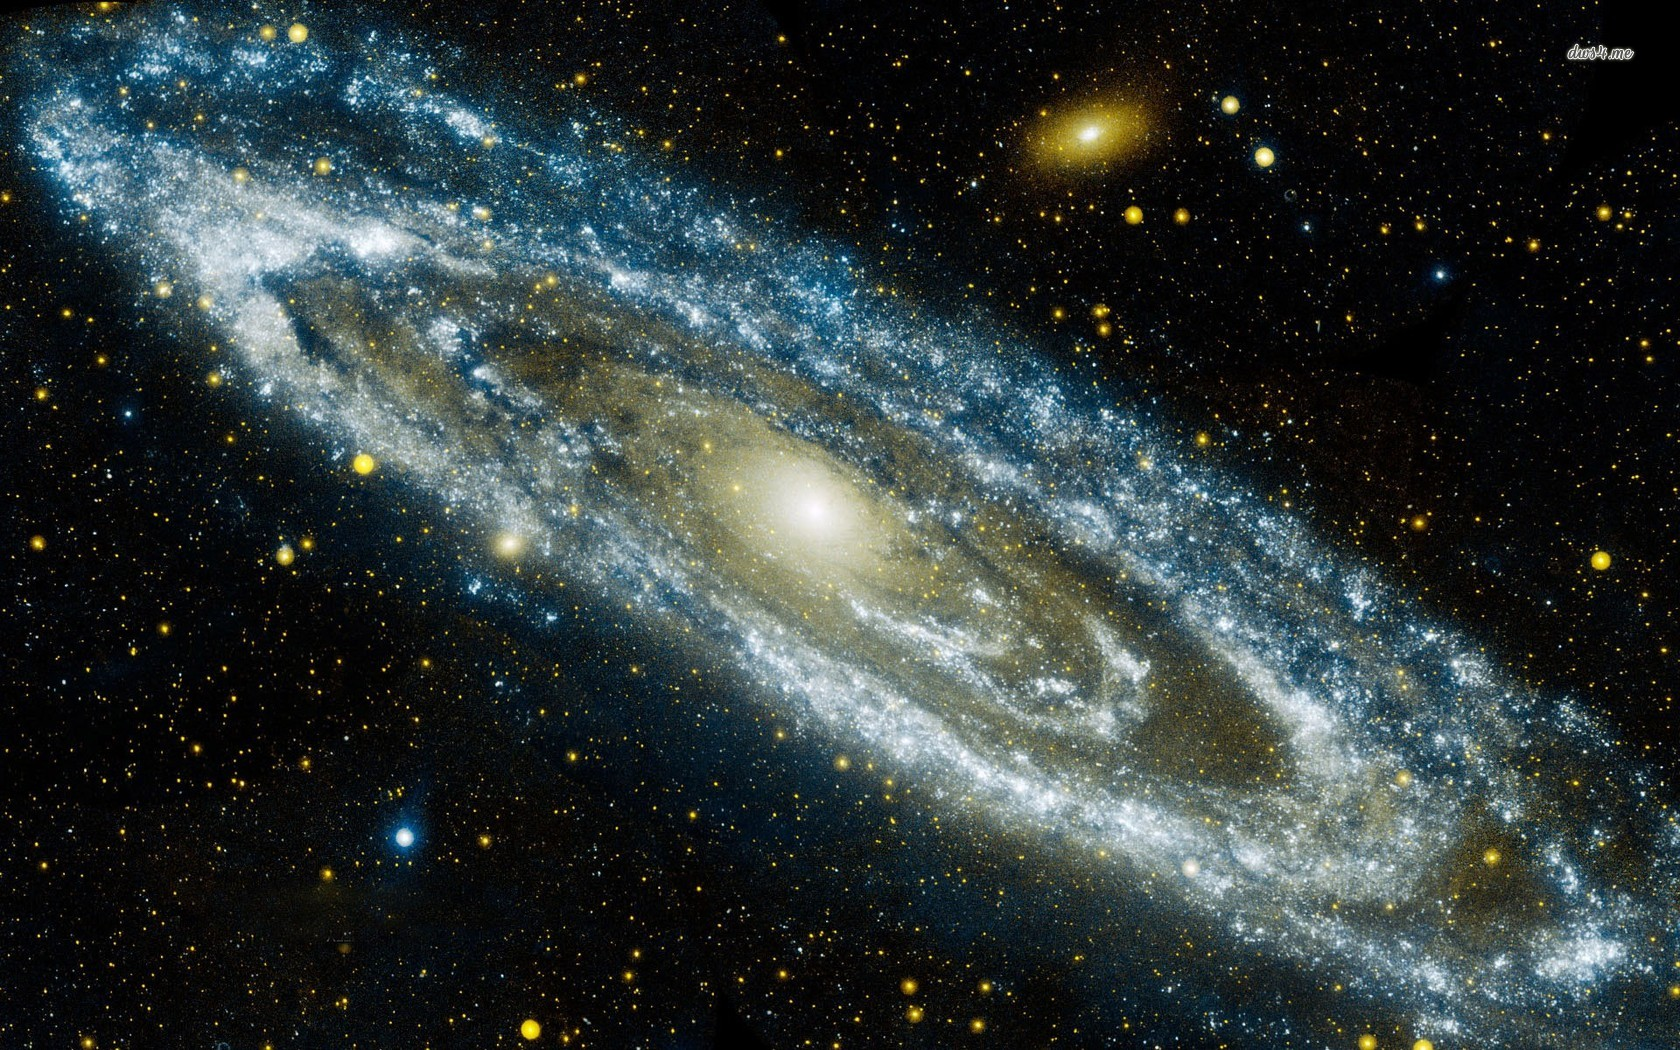 Image of the Andromeda Galaxy or M31 from NASA's Galaxy Evolution Explorer (GALEX)